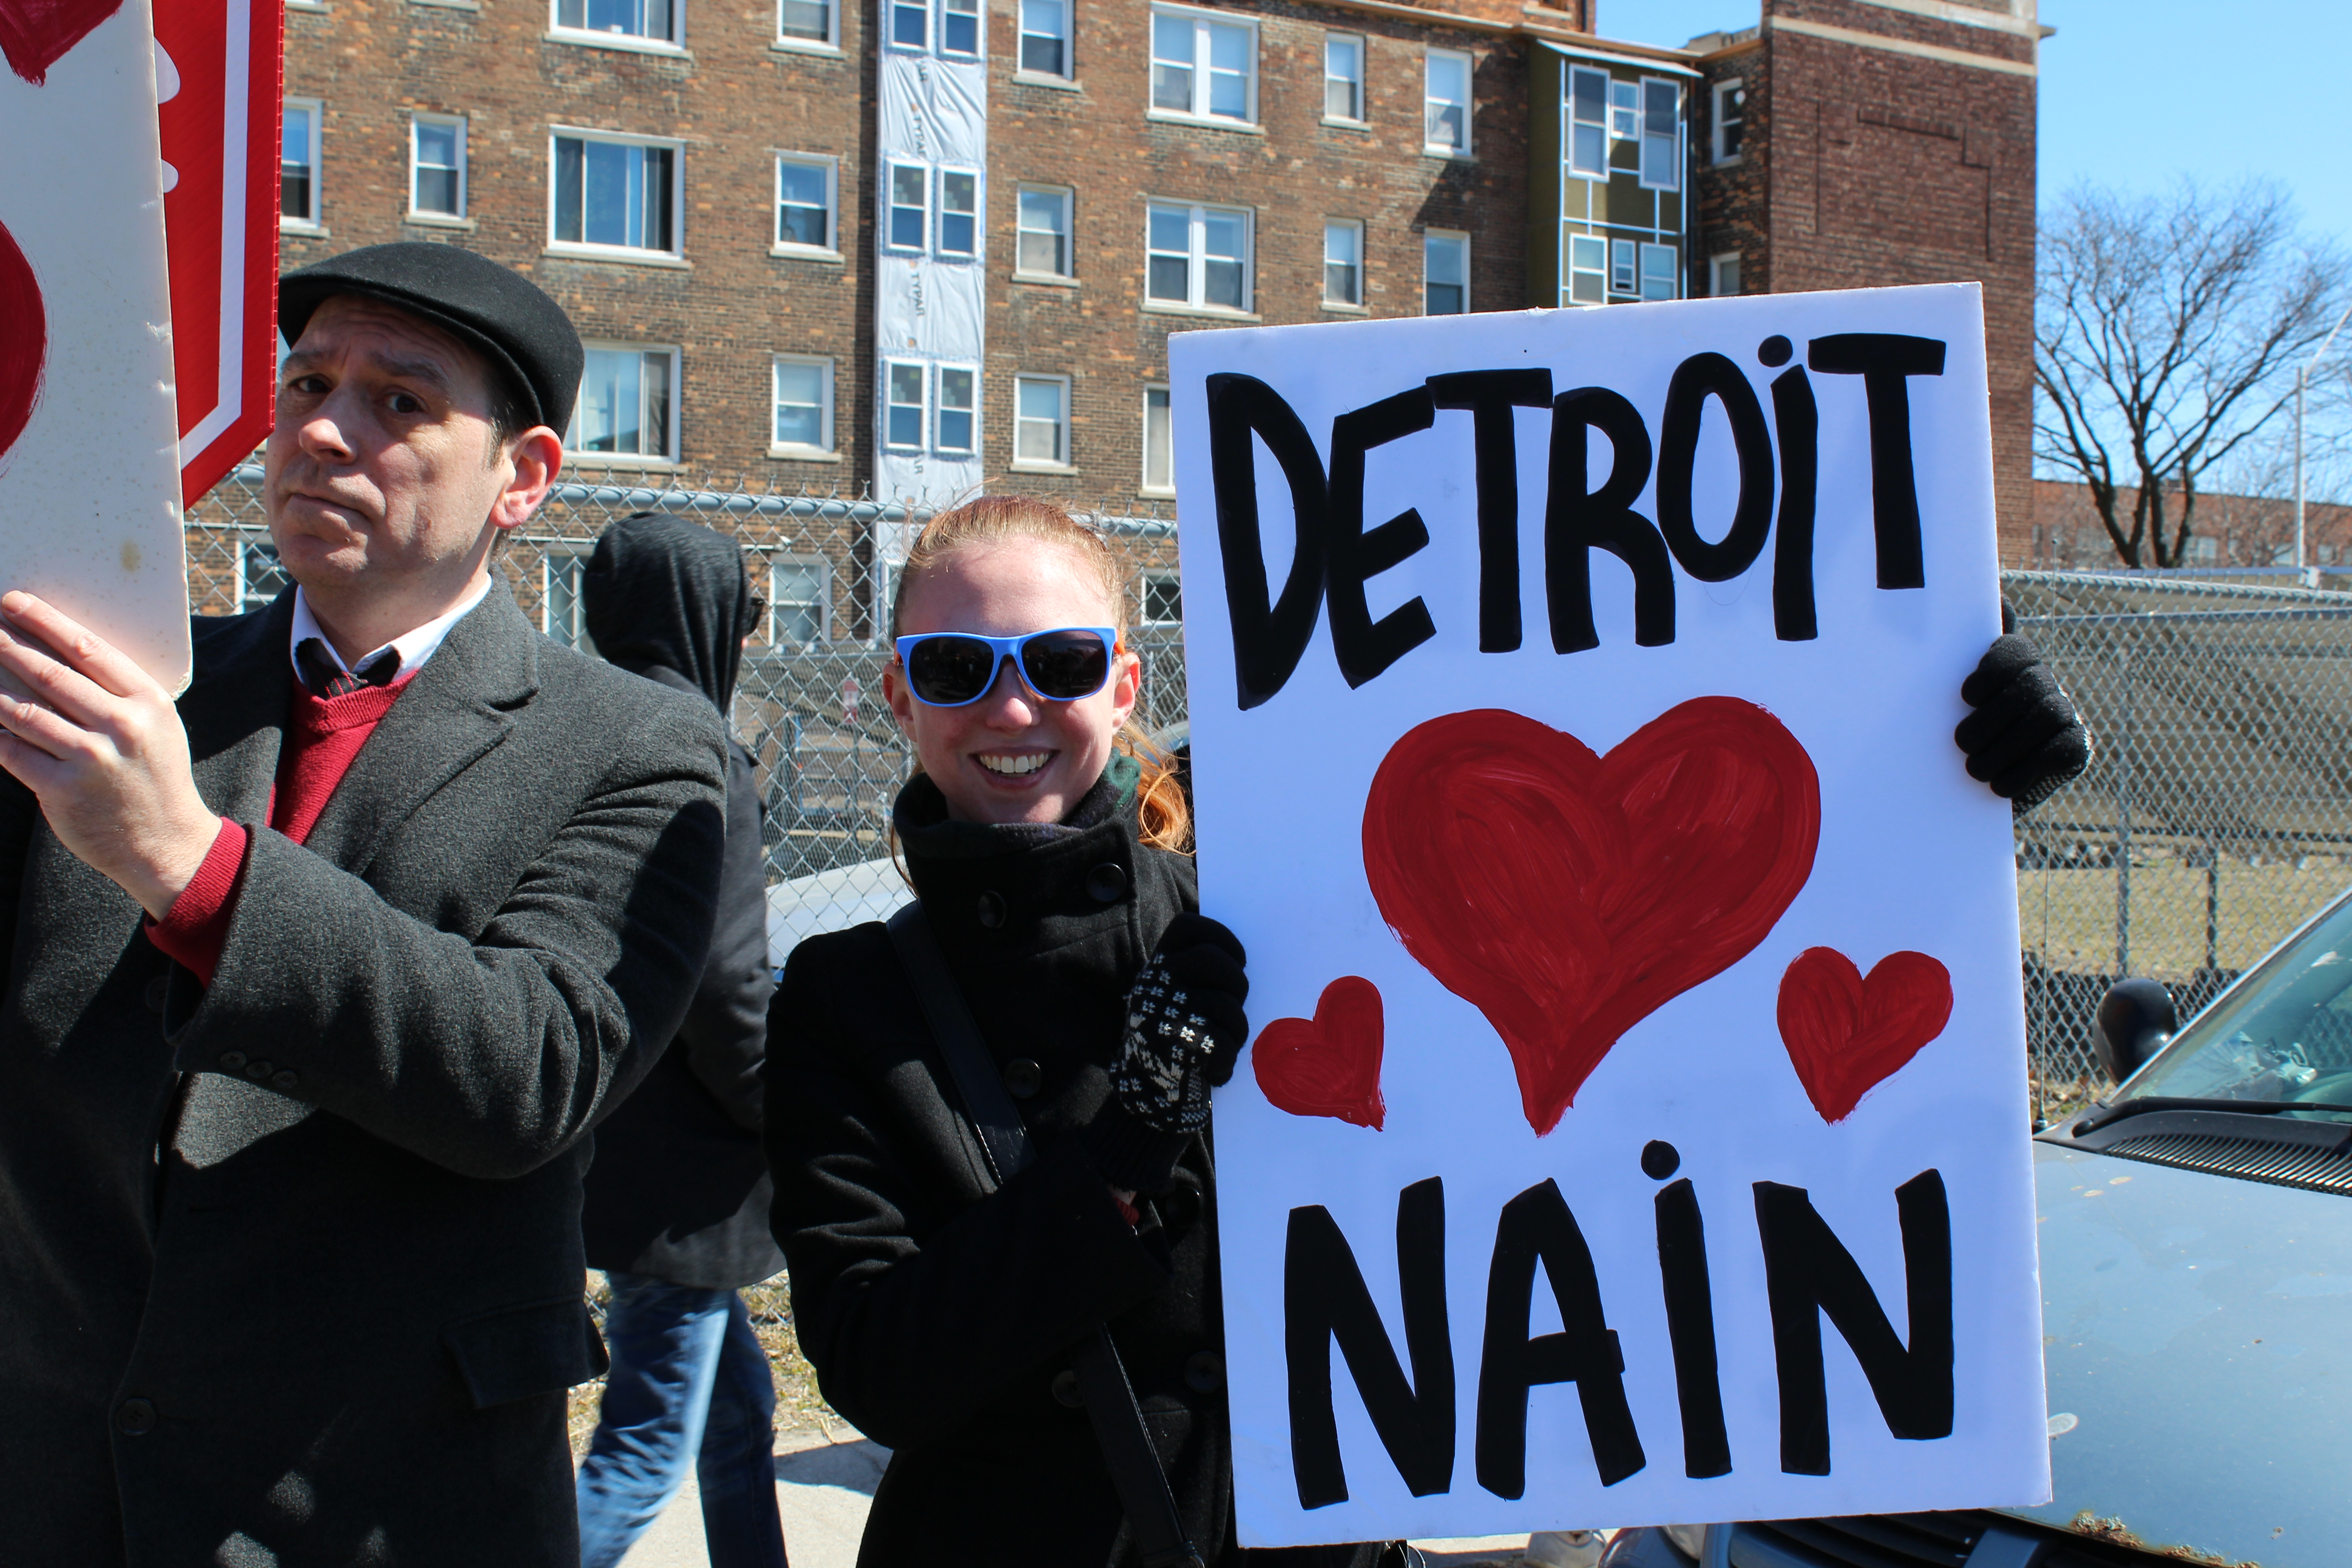 A man marching with the mache du nain holding a sign that says Detroit heart Nain